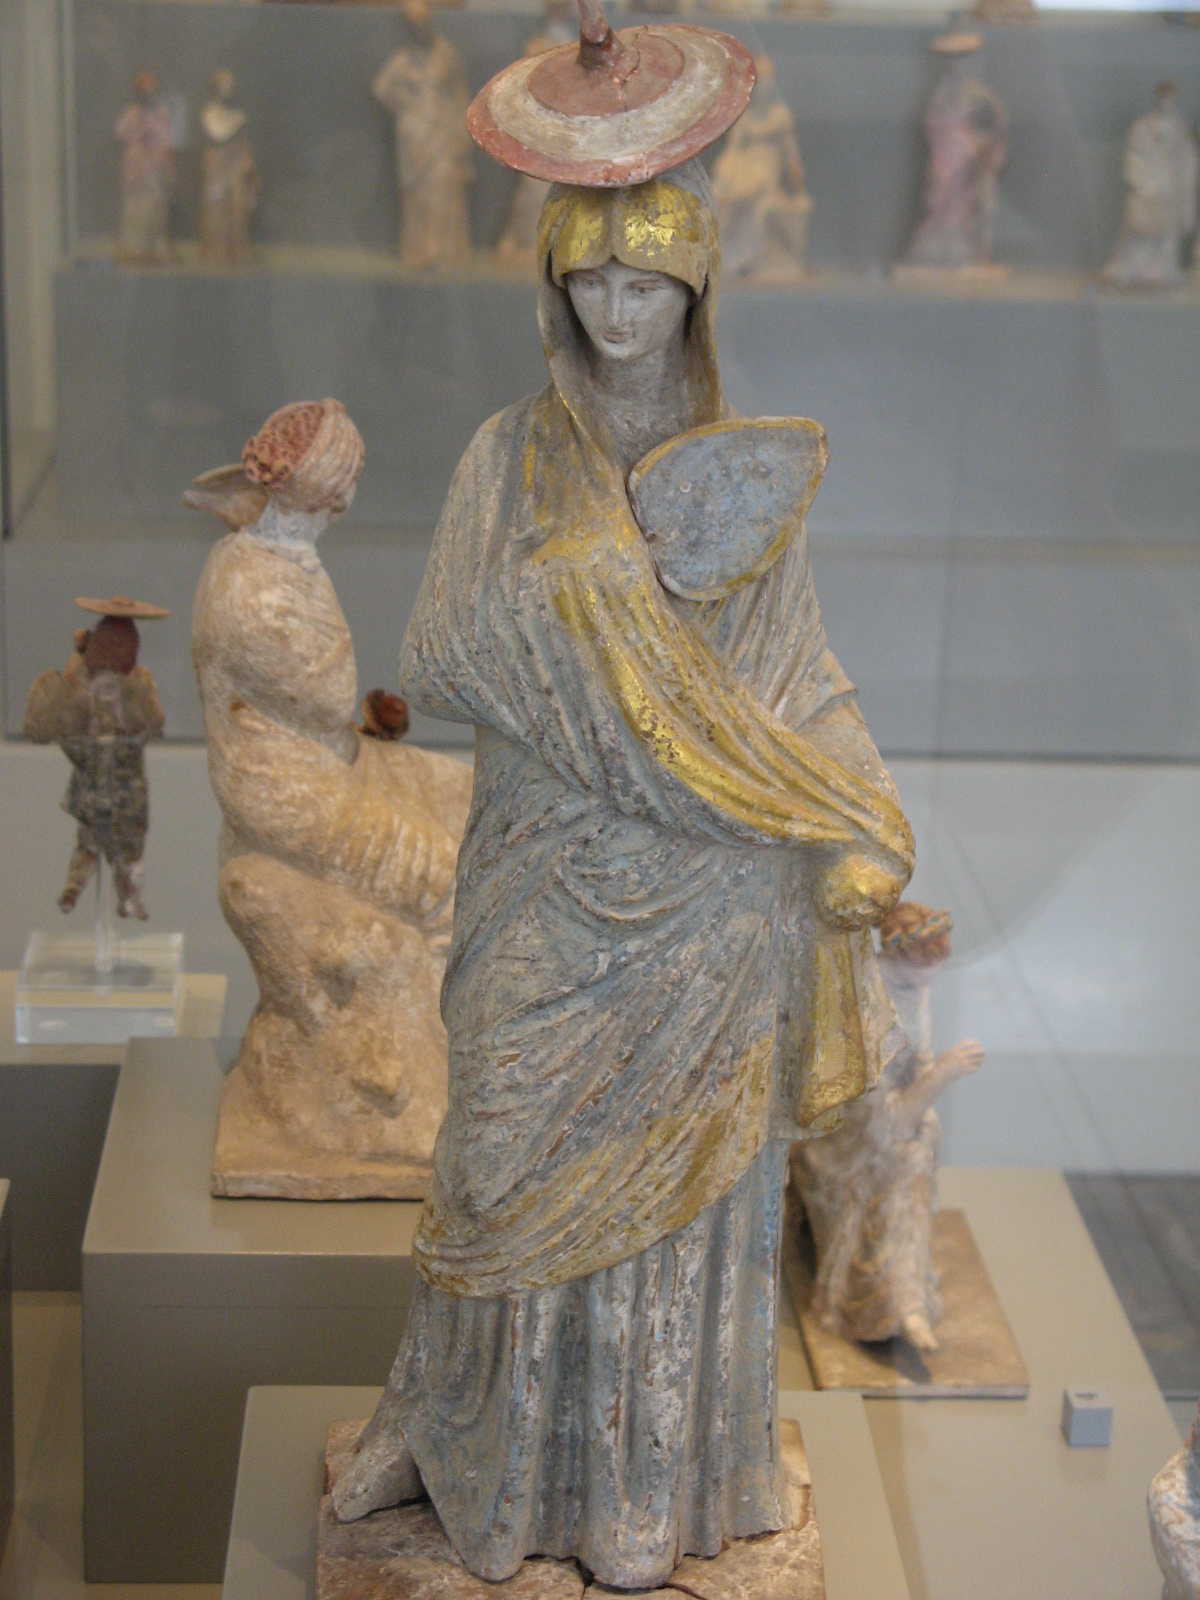 http://upload.wikimedia.org/wikipedia/commons/7/7e/Altes_Museum-Tanagra-lady_with_fan.jpg